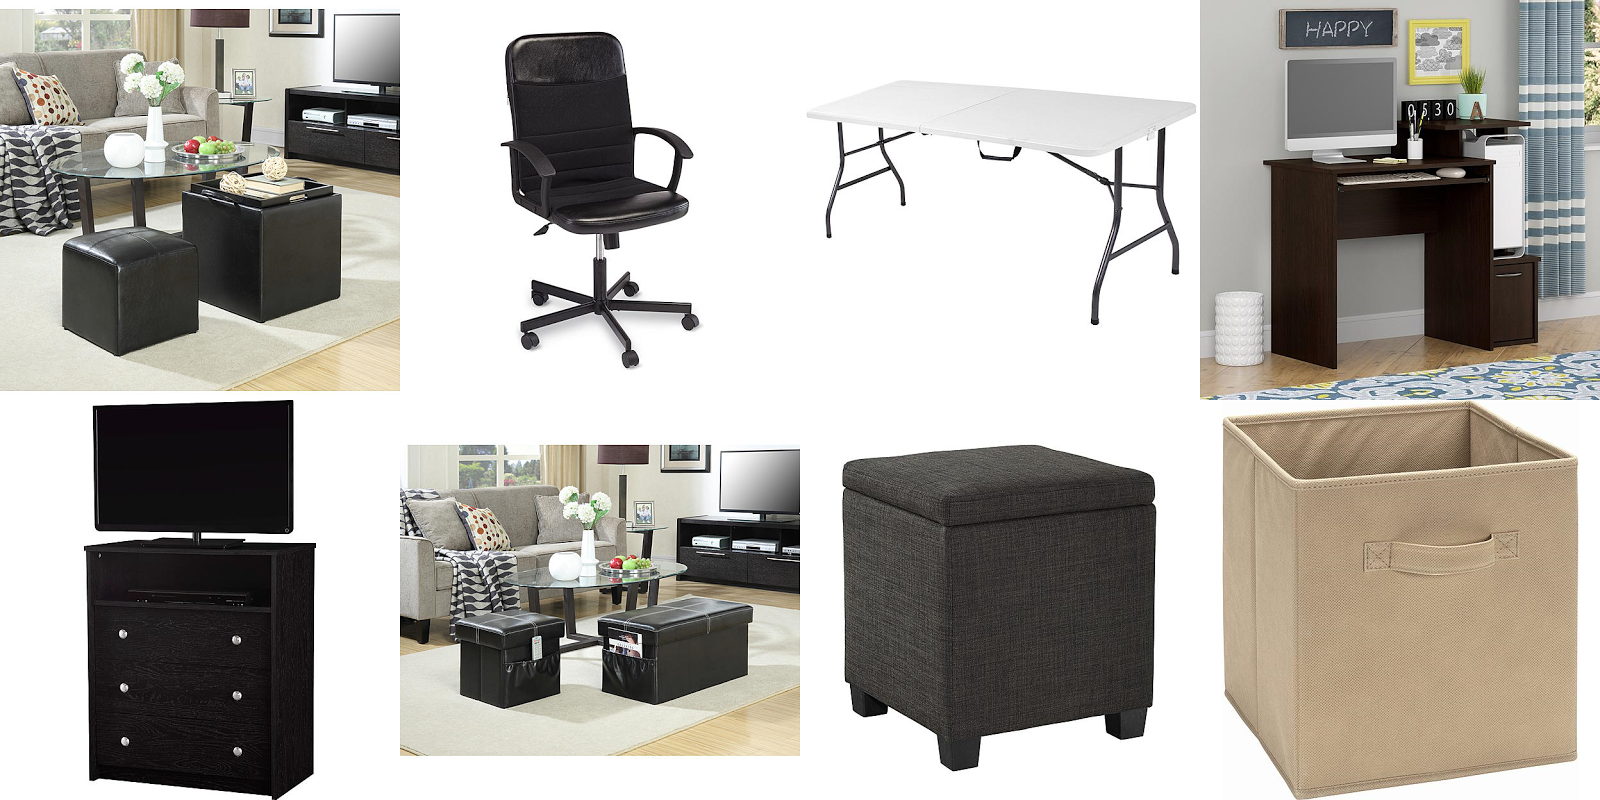 Kmart Buy A Furniture Earn 50 Back In Points Qpanion